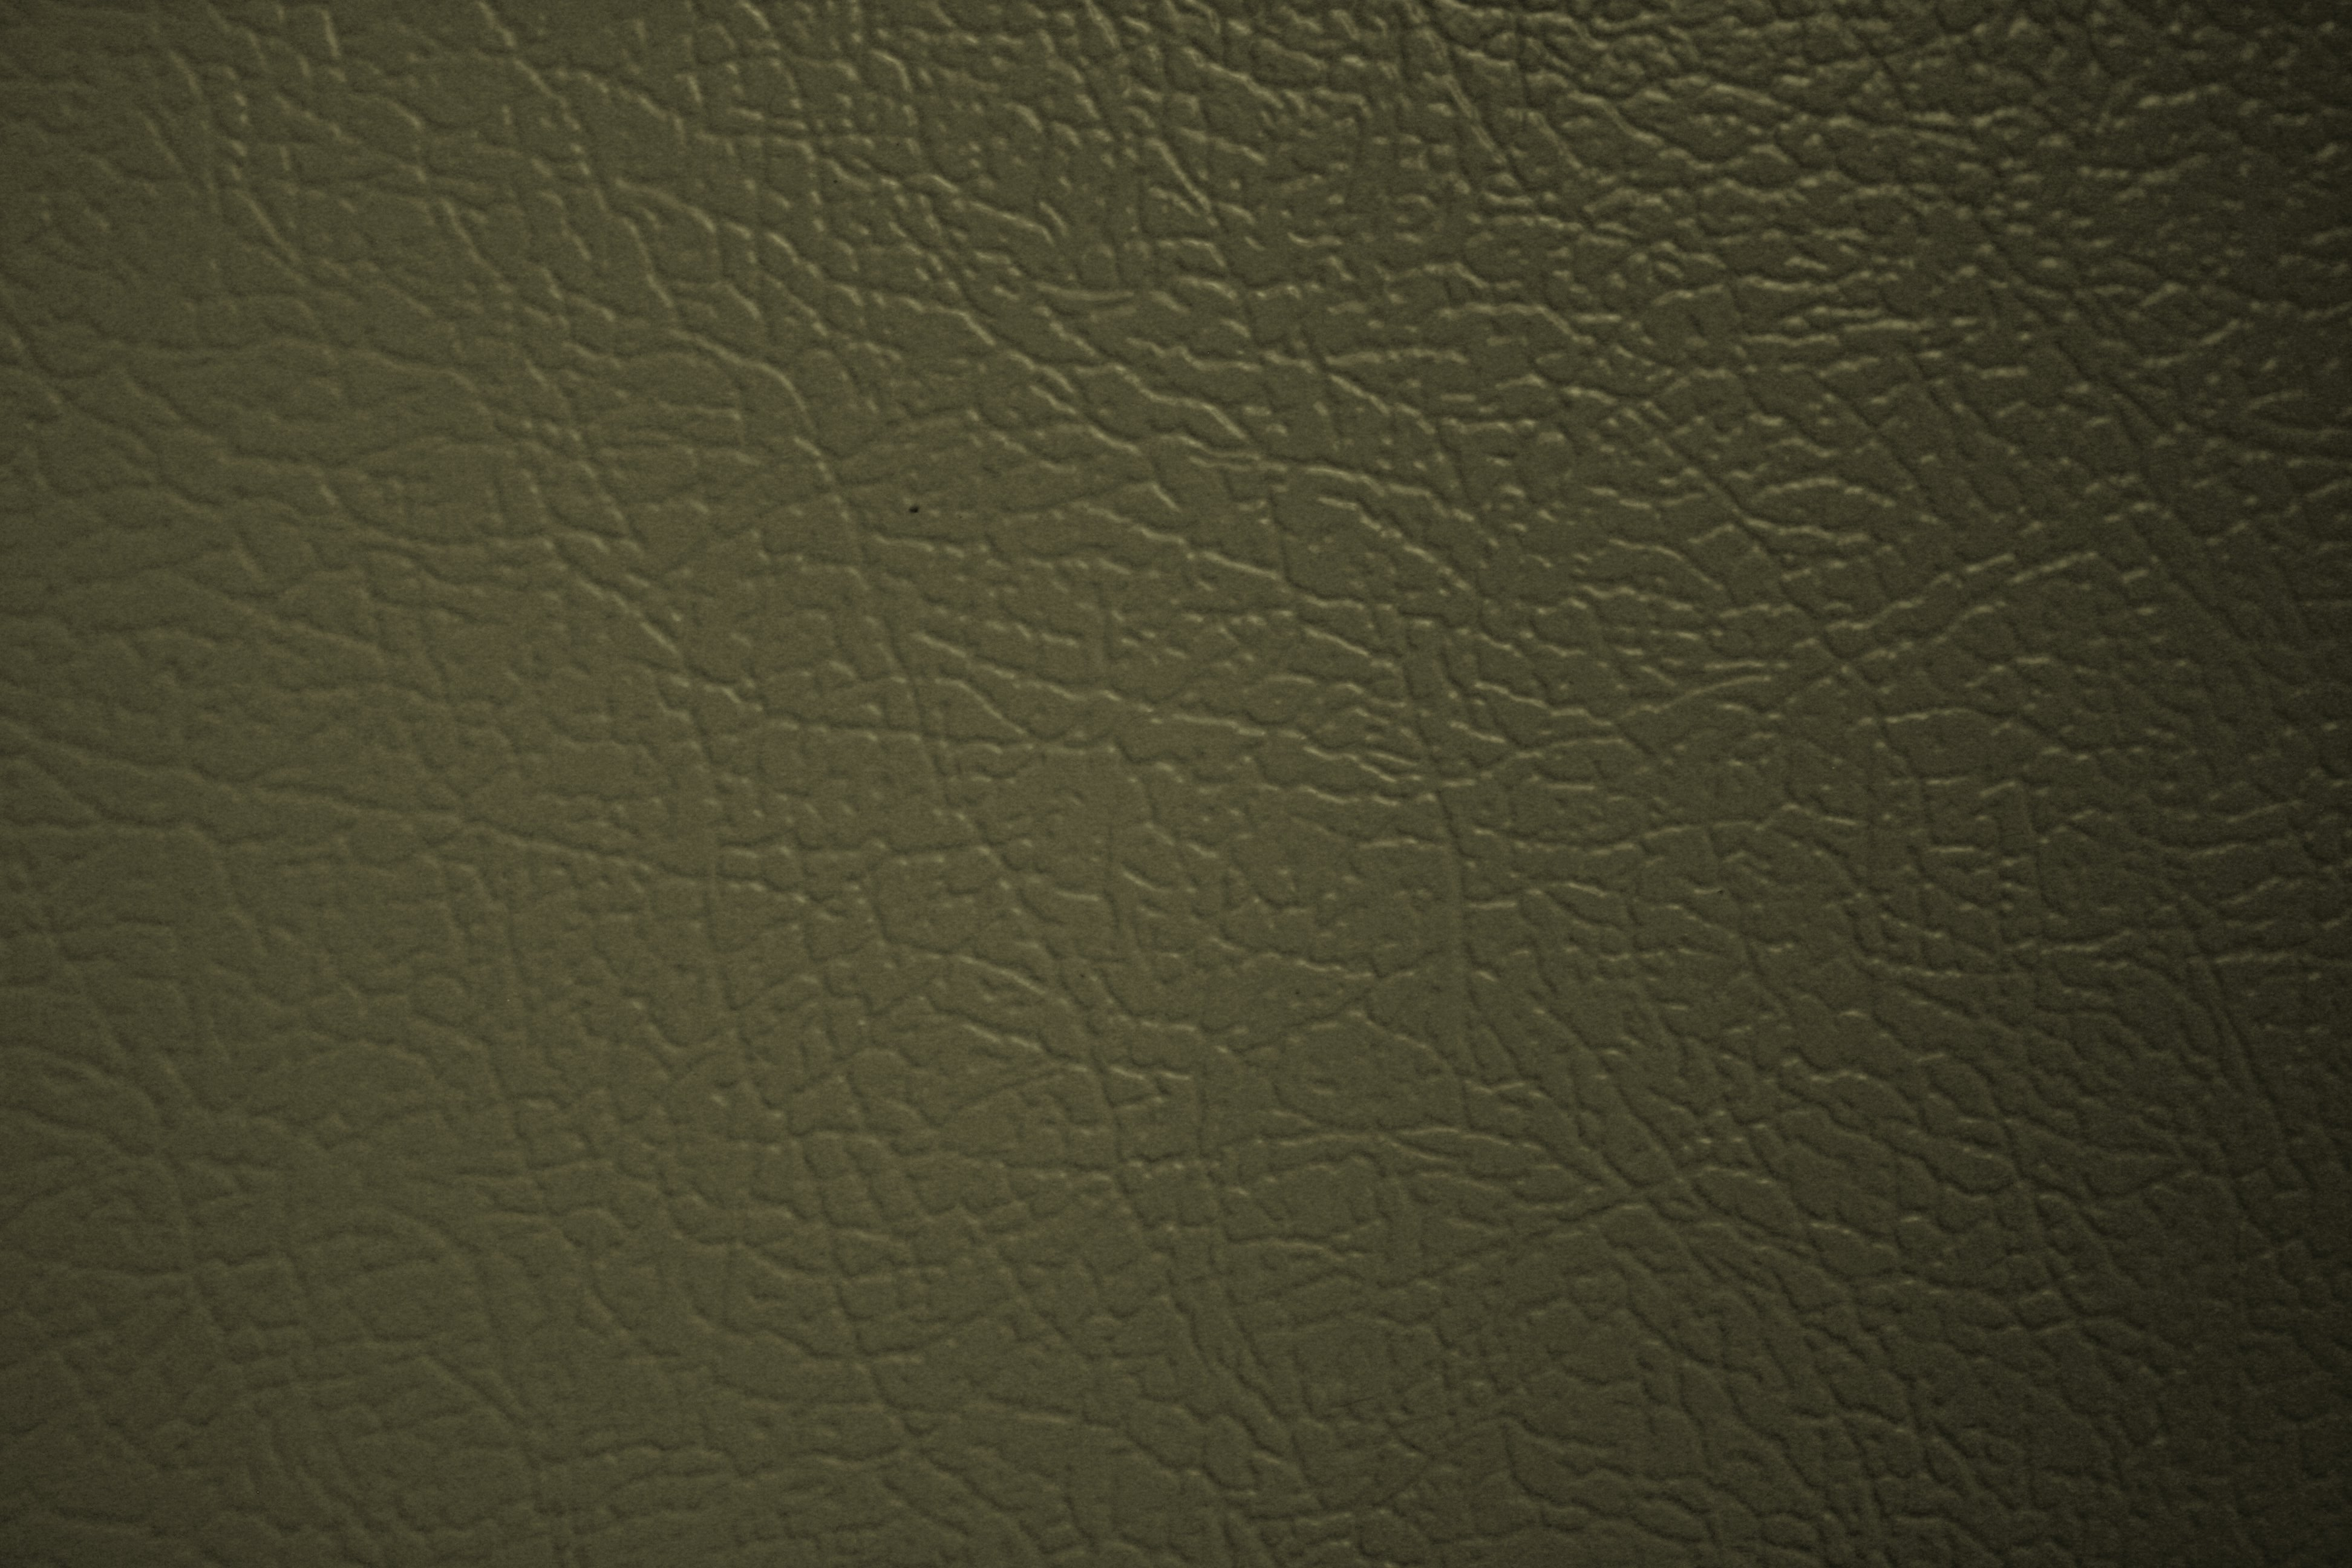 Olive Green Faux Leather Texture Picture Free Photograph